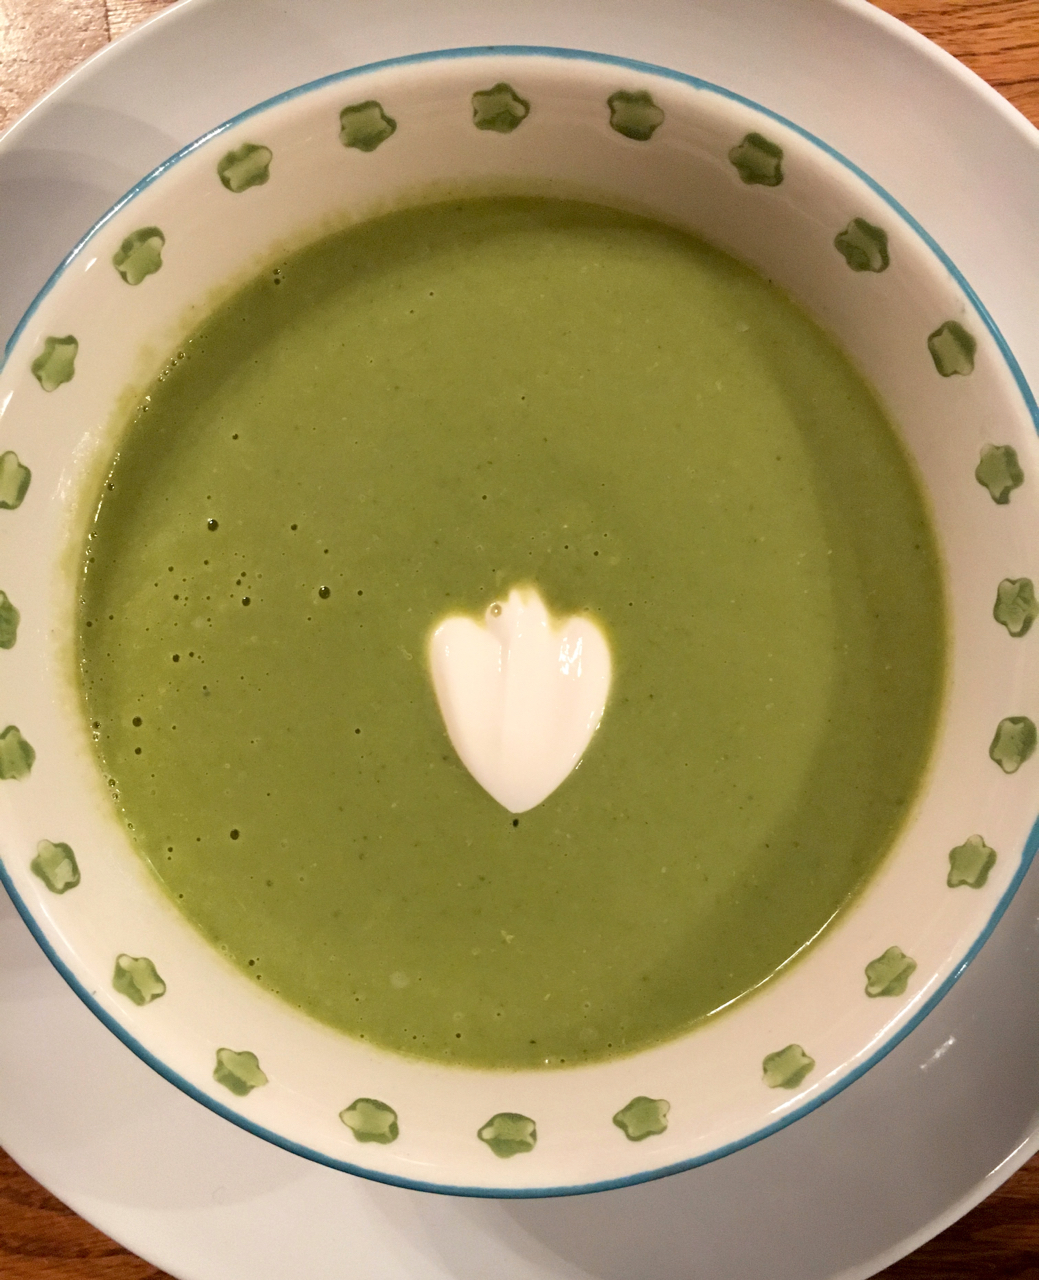 Creamy Broccoli Soup at Zesty Olive